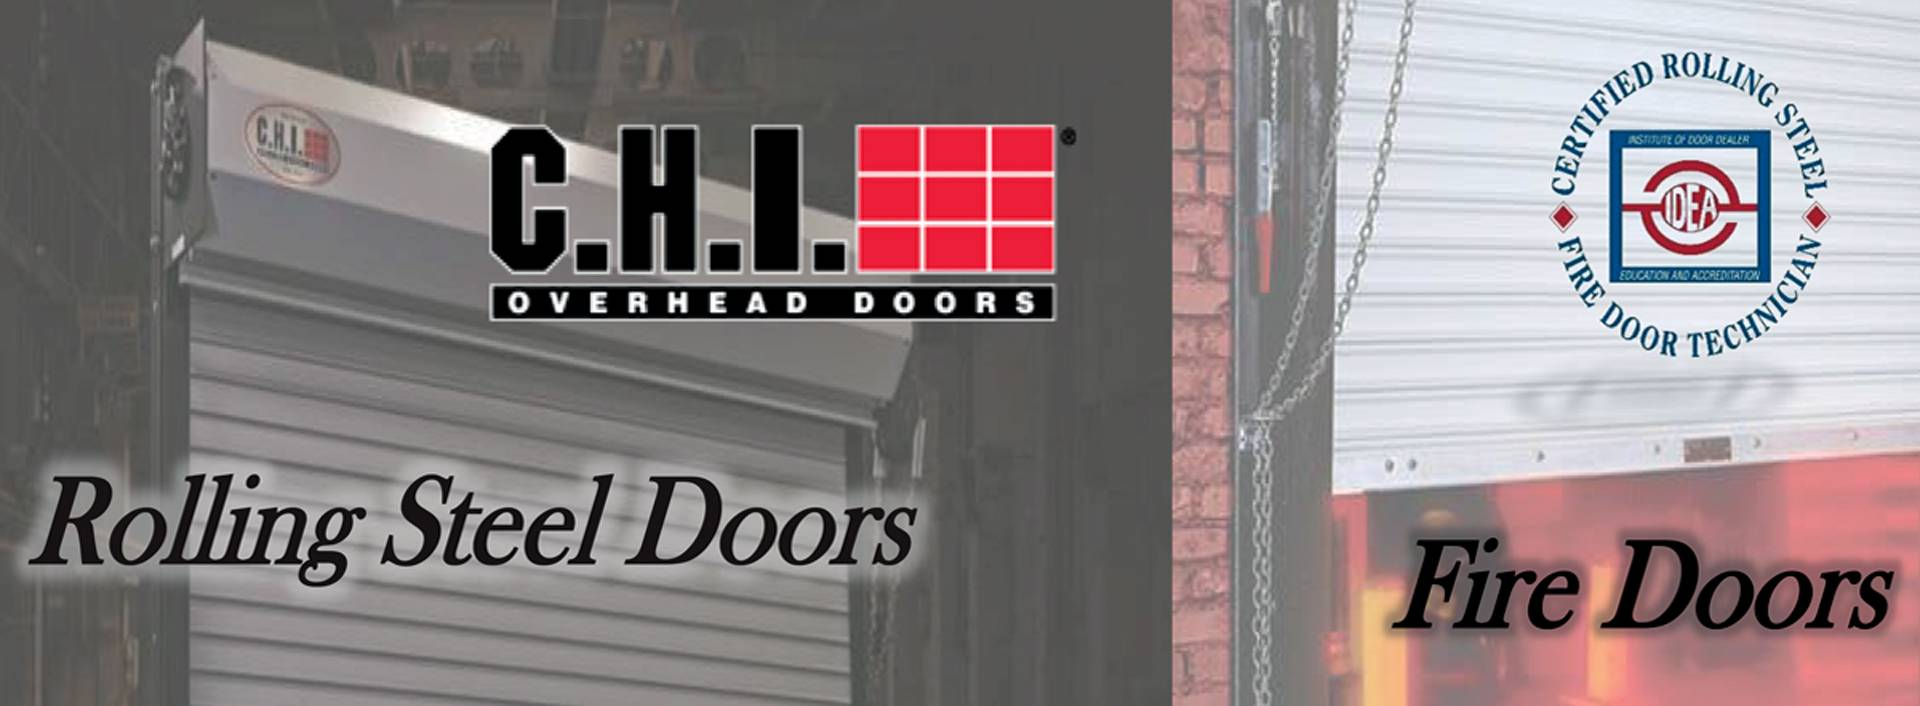 Rolling Steel Doors & Fire Doors